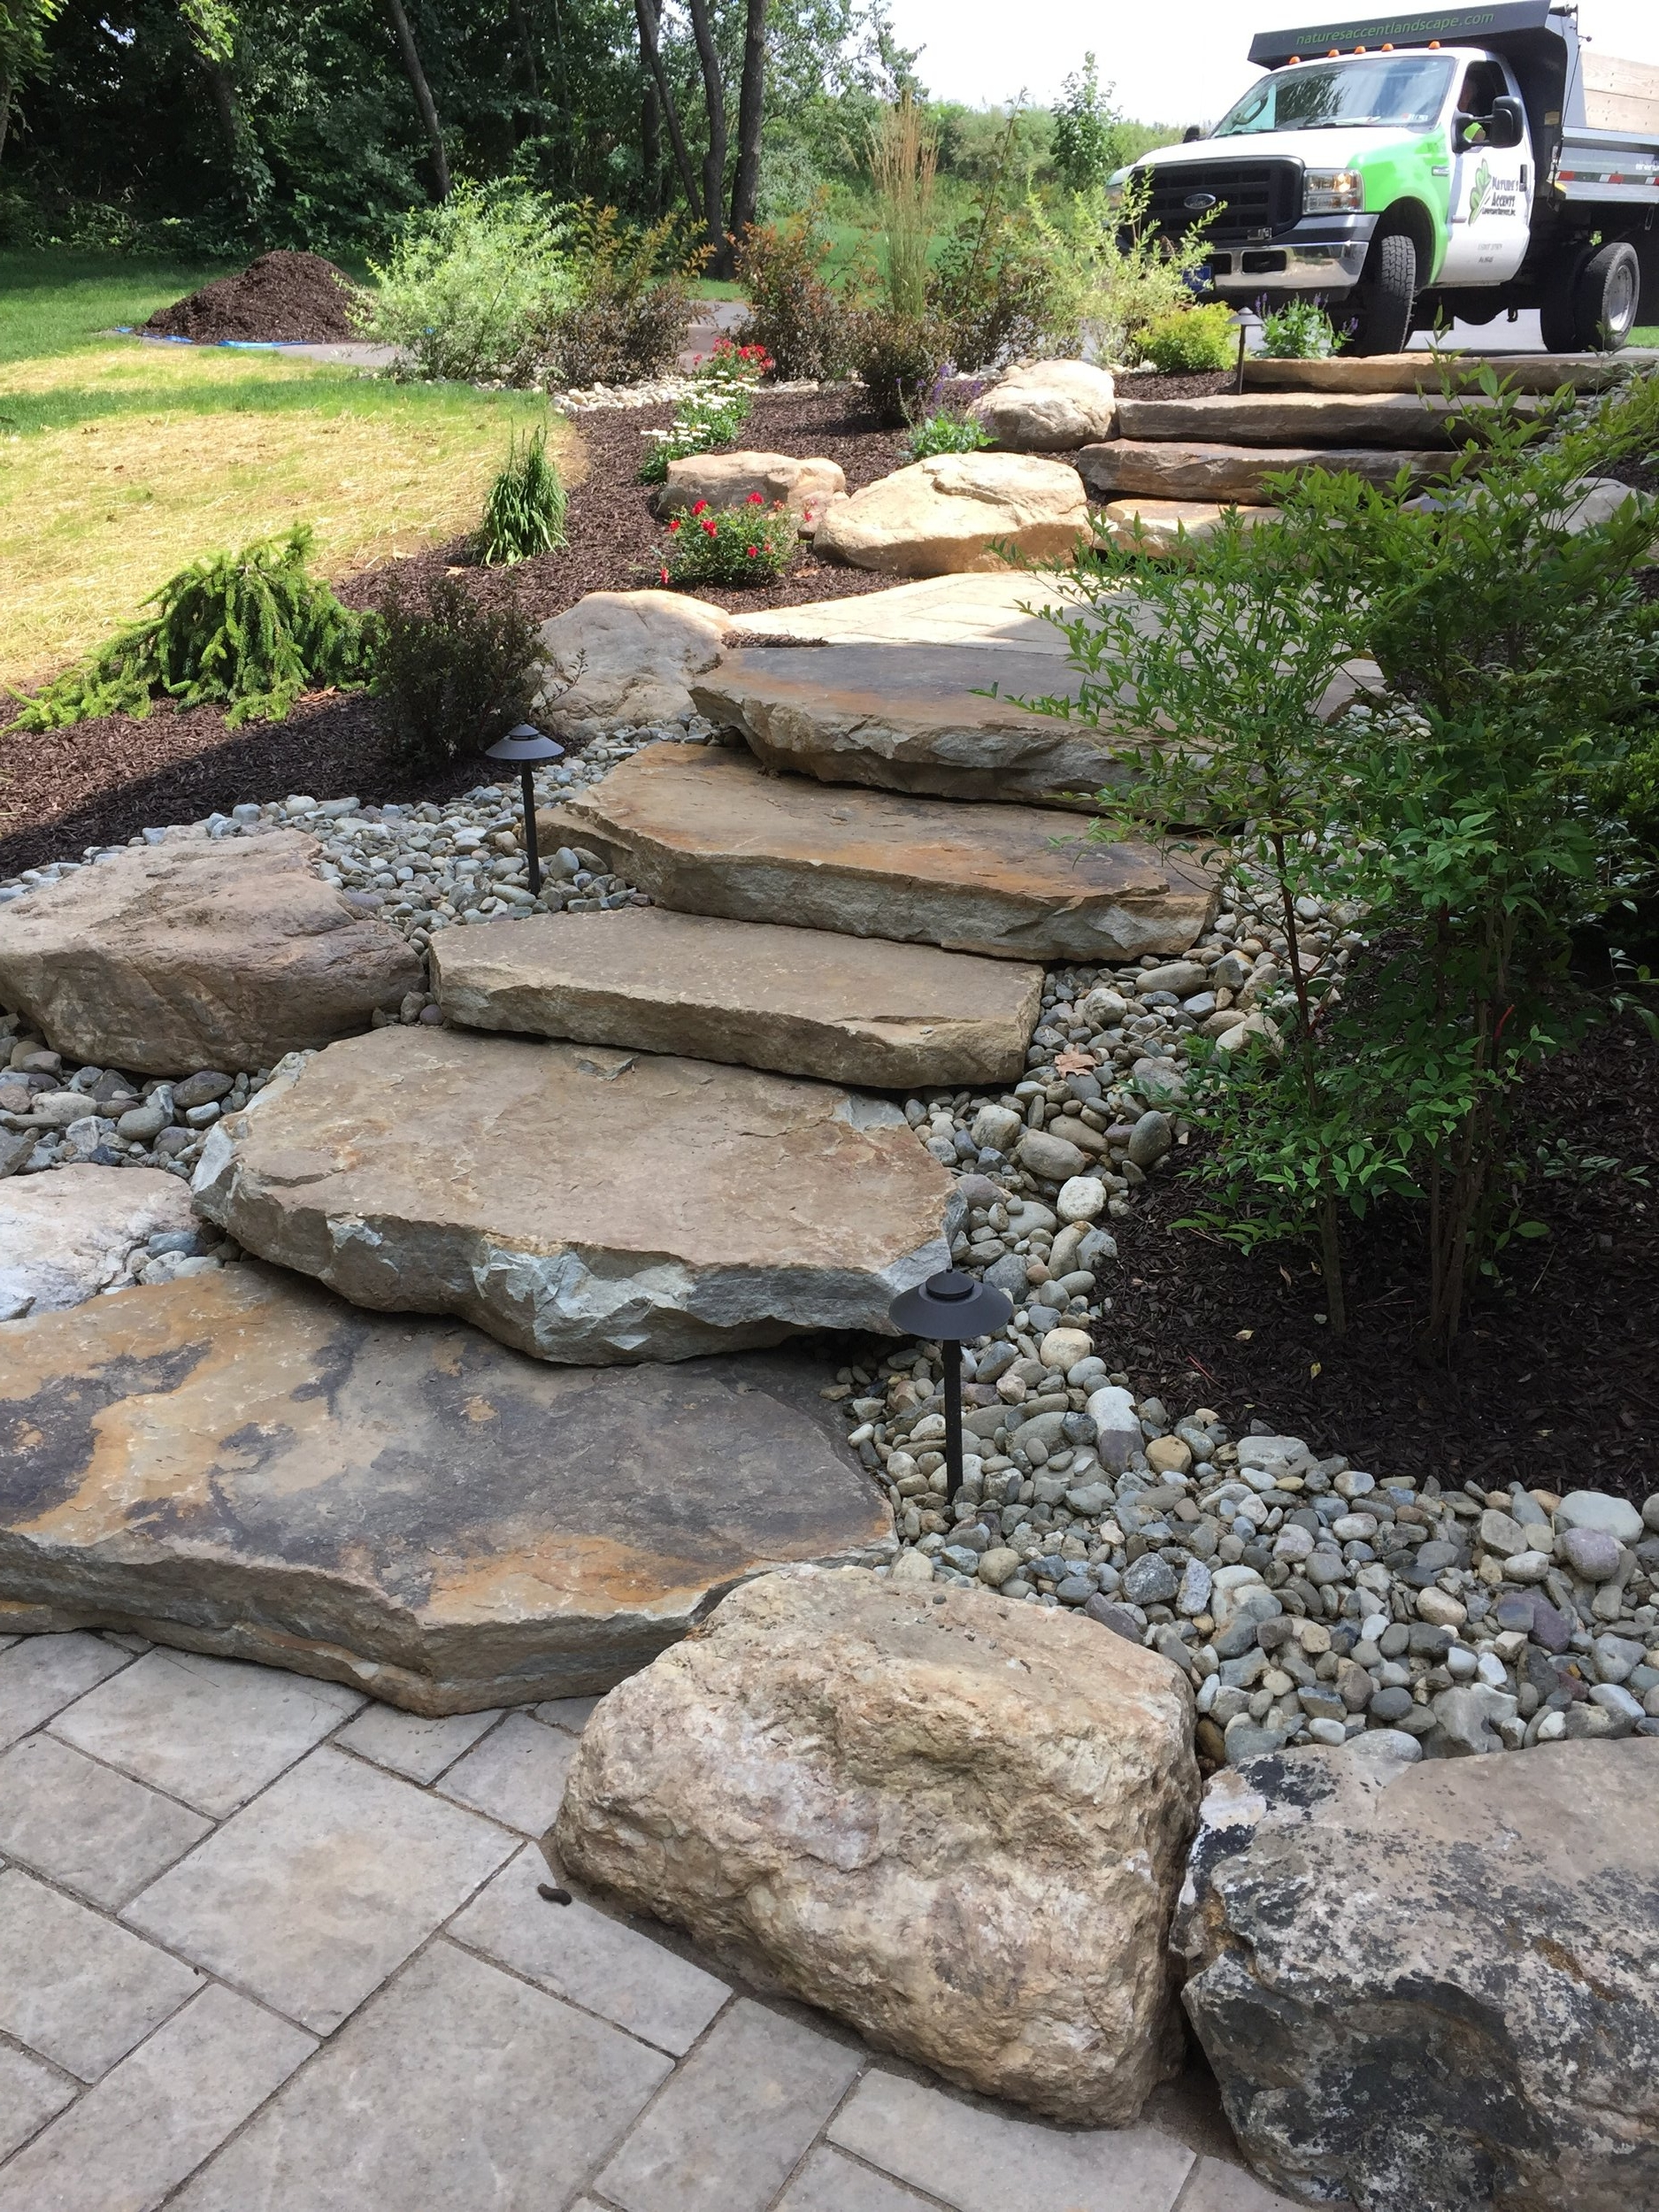 Landscape contractor with top landscape design and installation in Allentown, PA